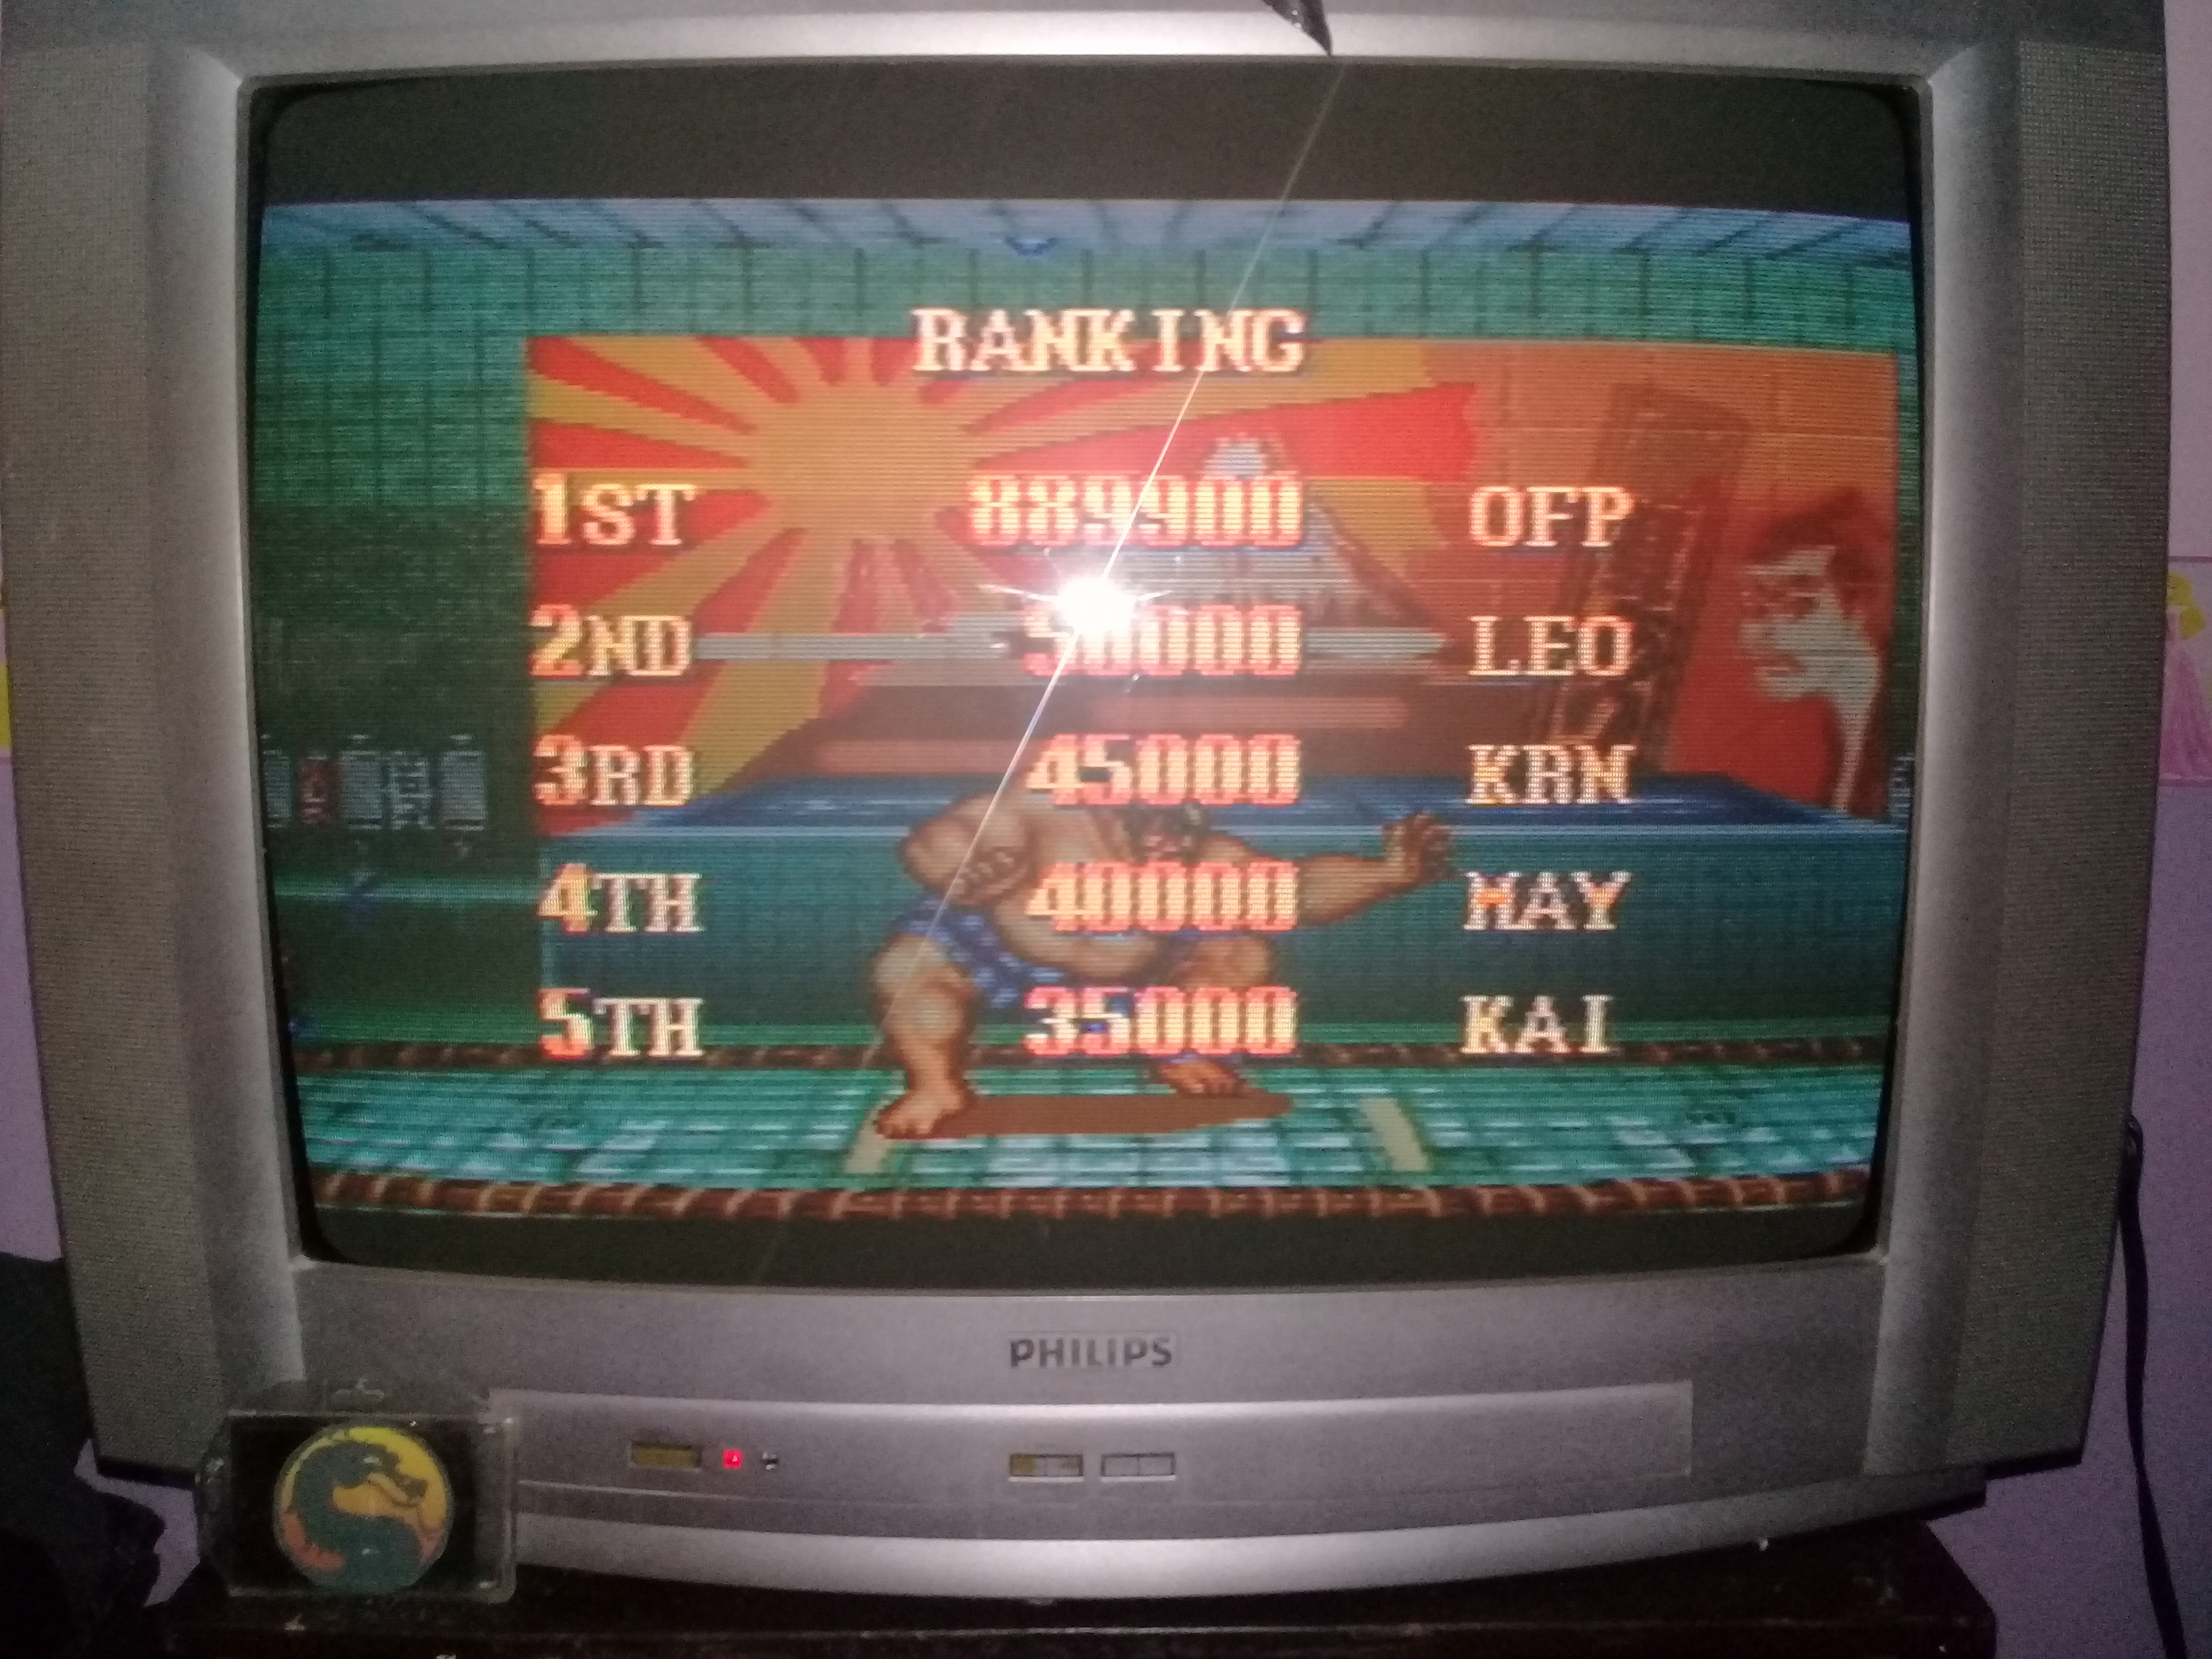 omargeddon: Super Street Fighter II: The New Challengers [Super Battle: Difficulty 8] (SNES/Super Famicom) 889,900 points on 2020-03-15 11:02:52